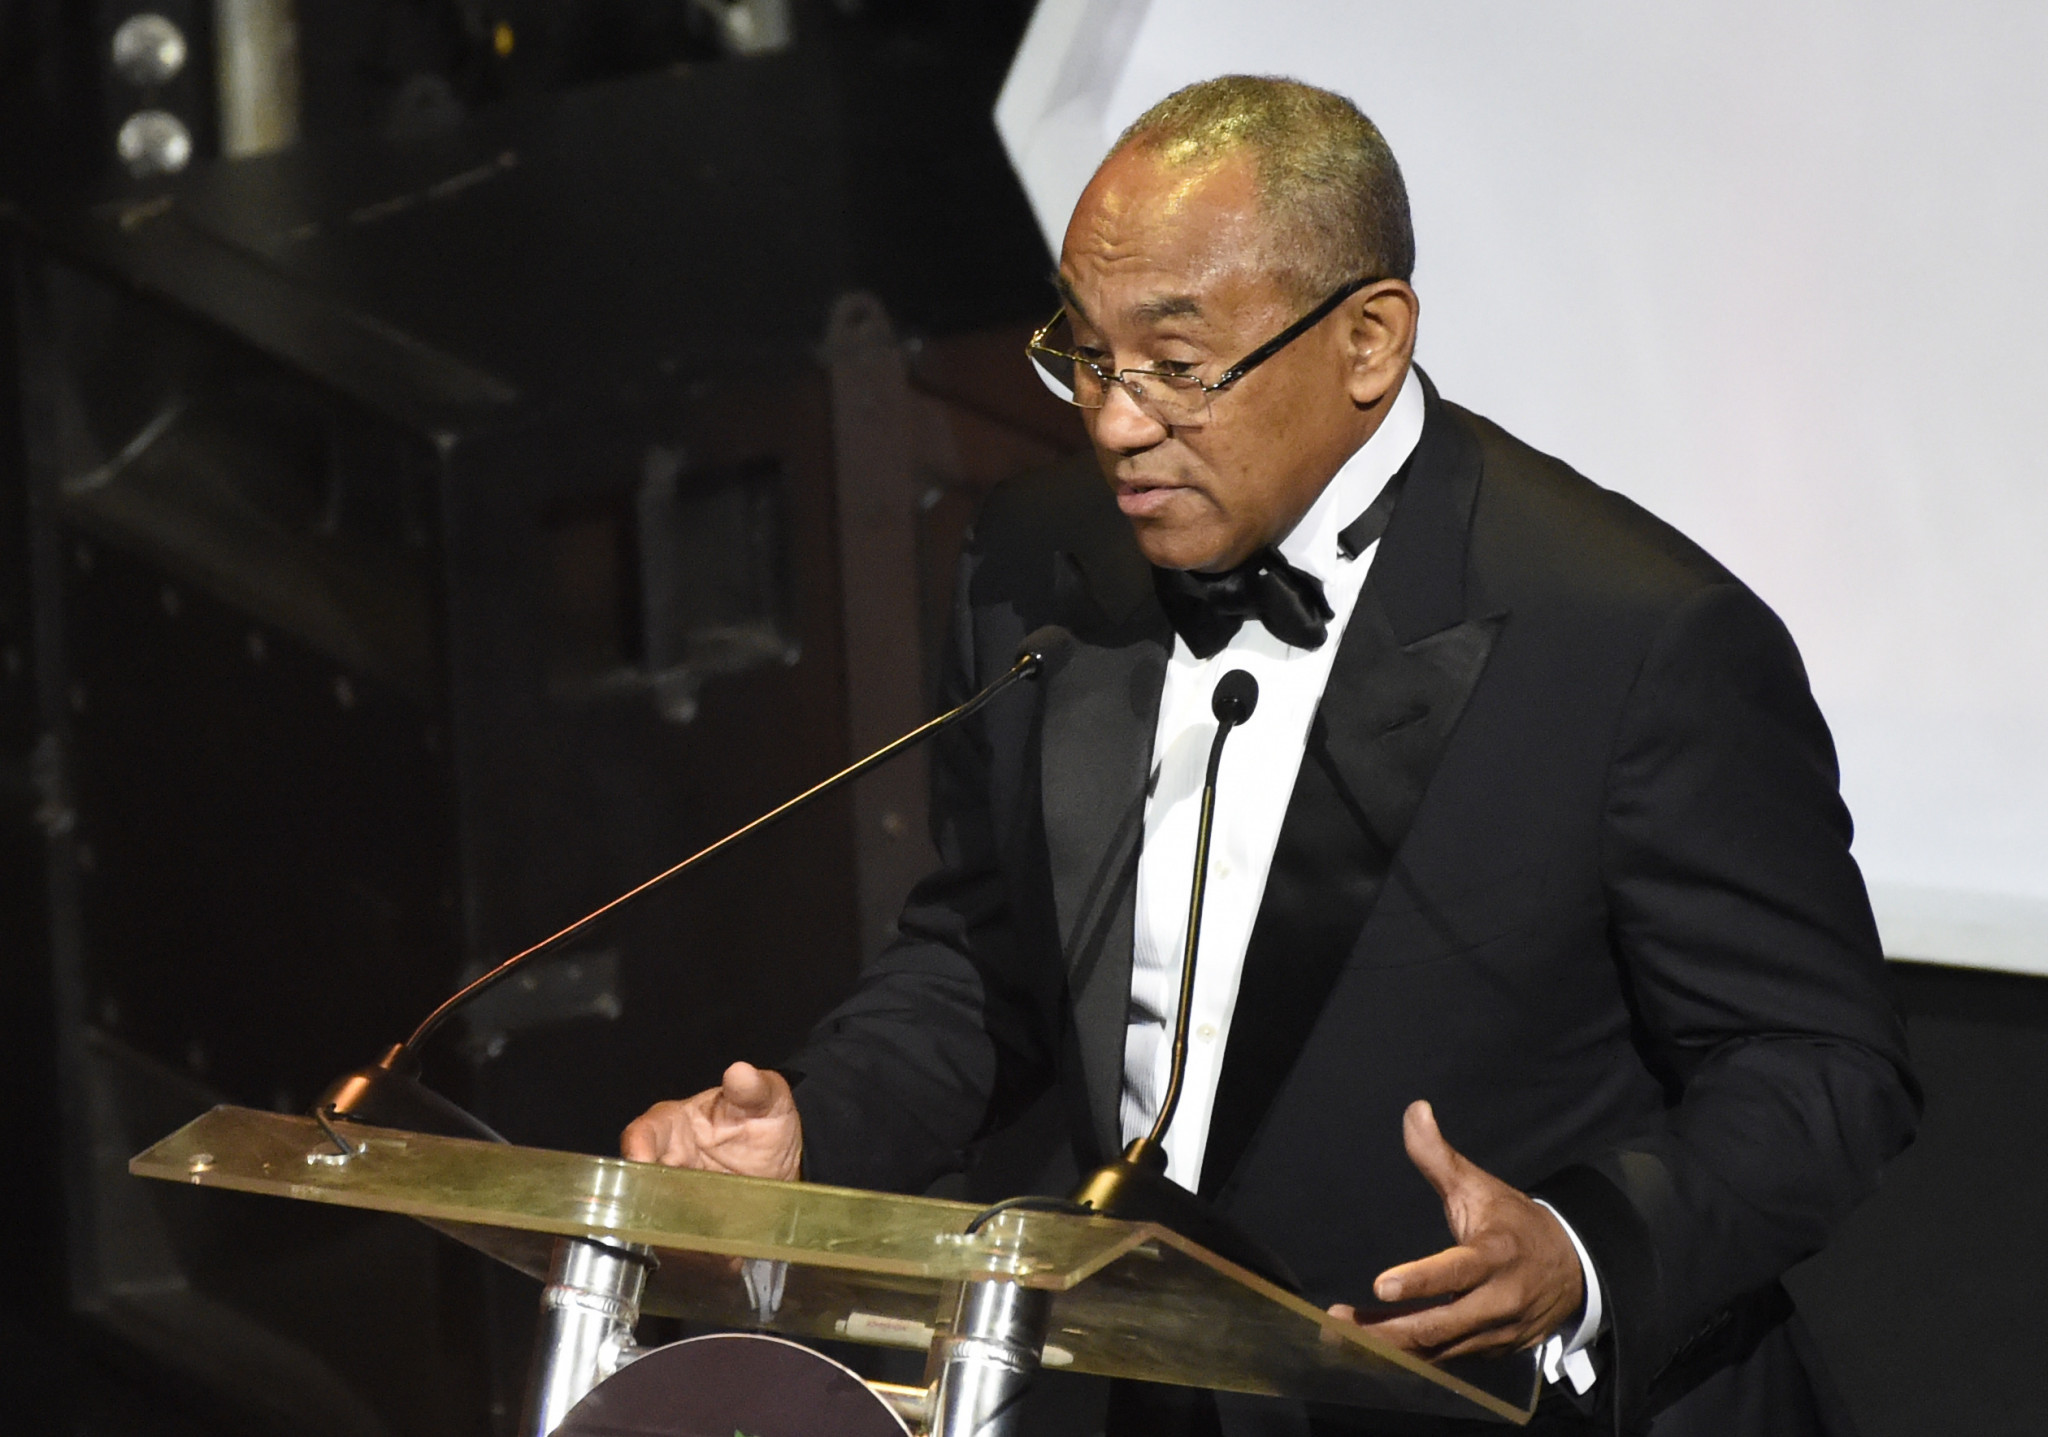 CAF President reiterates support for Morocco hosting 2026 FIFA World Cup